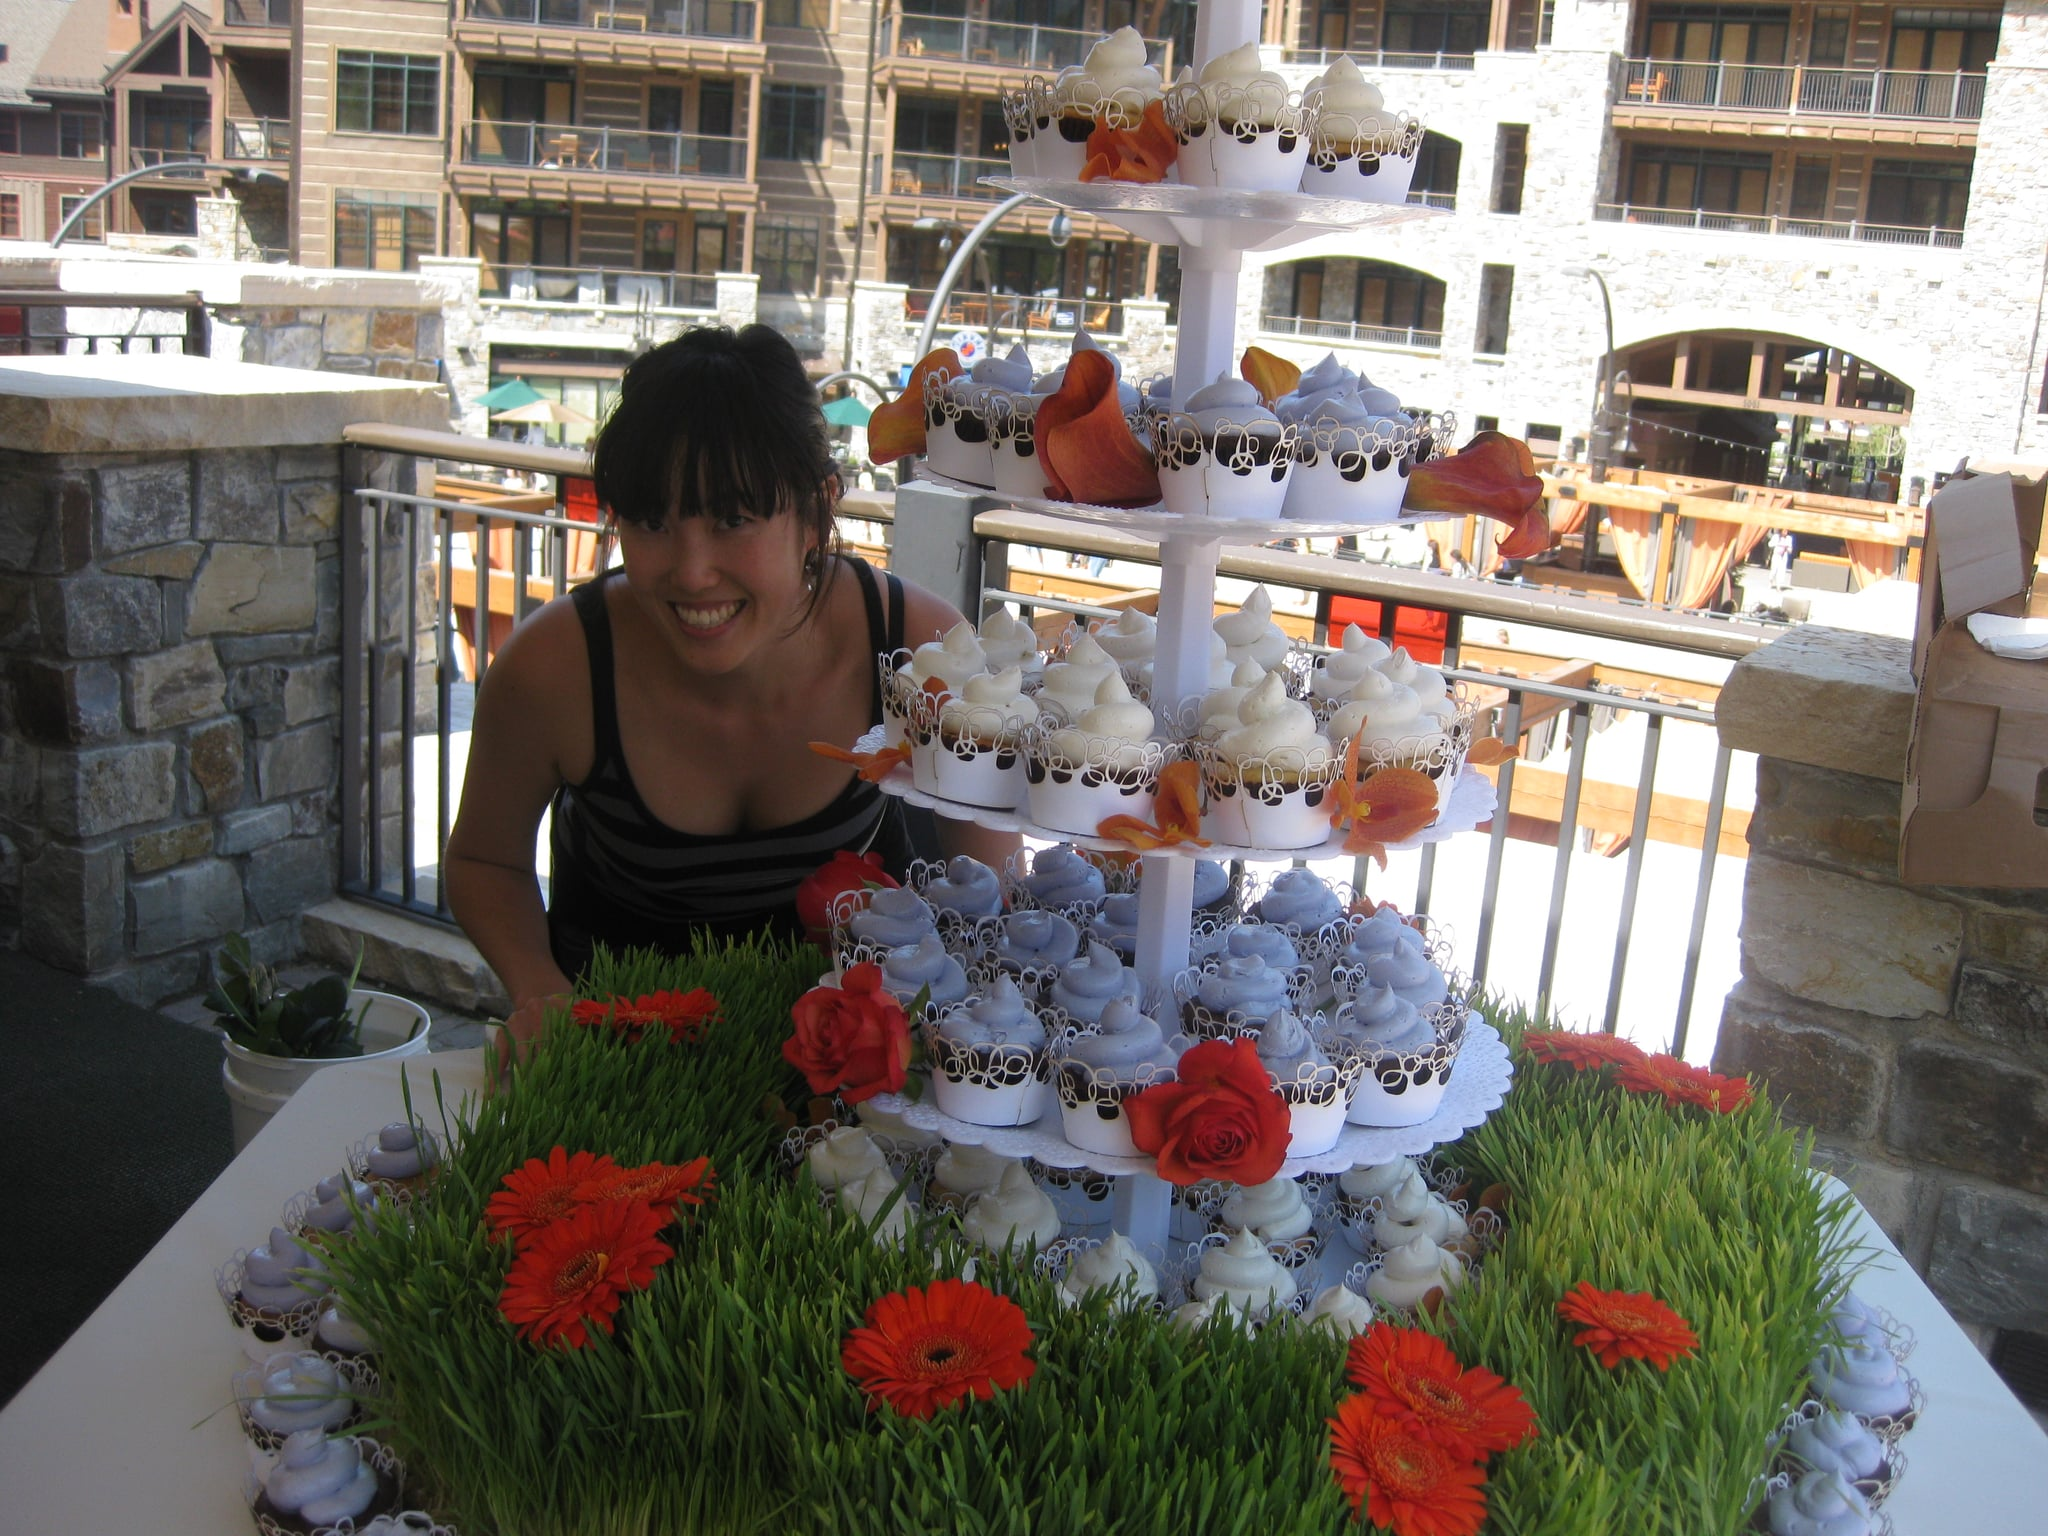 Grace poses with the cupcakes.